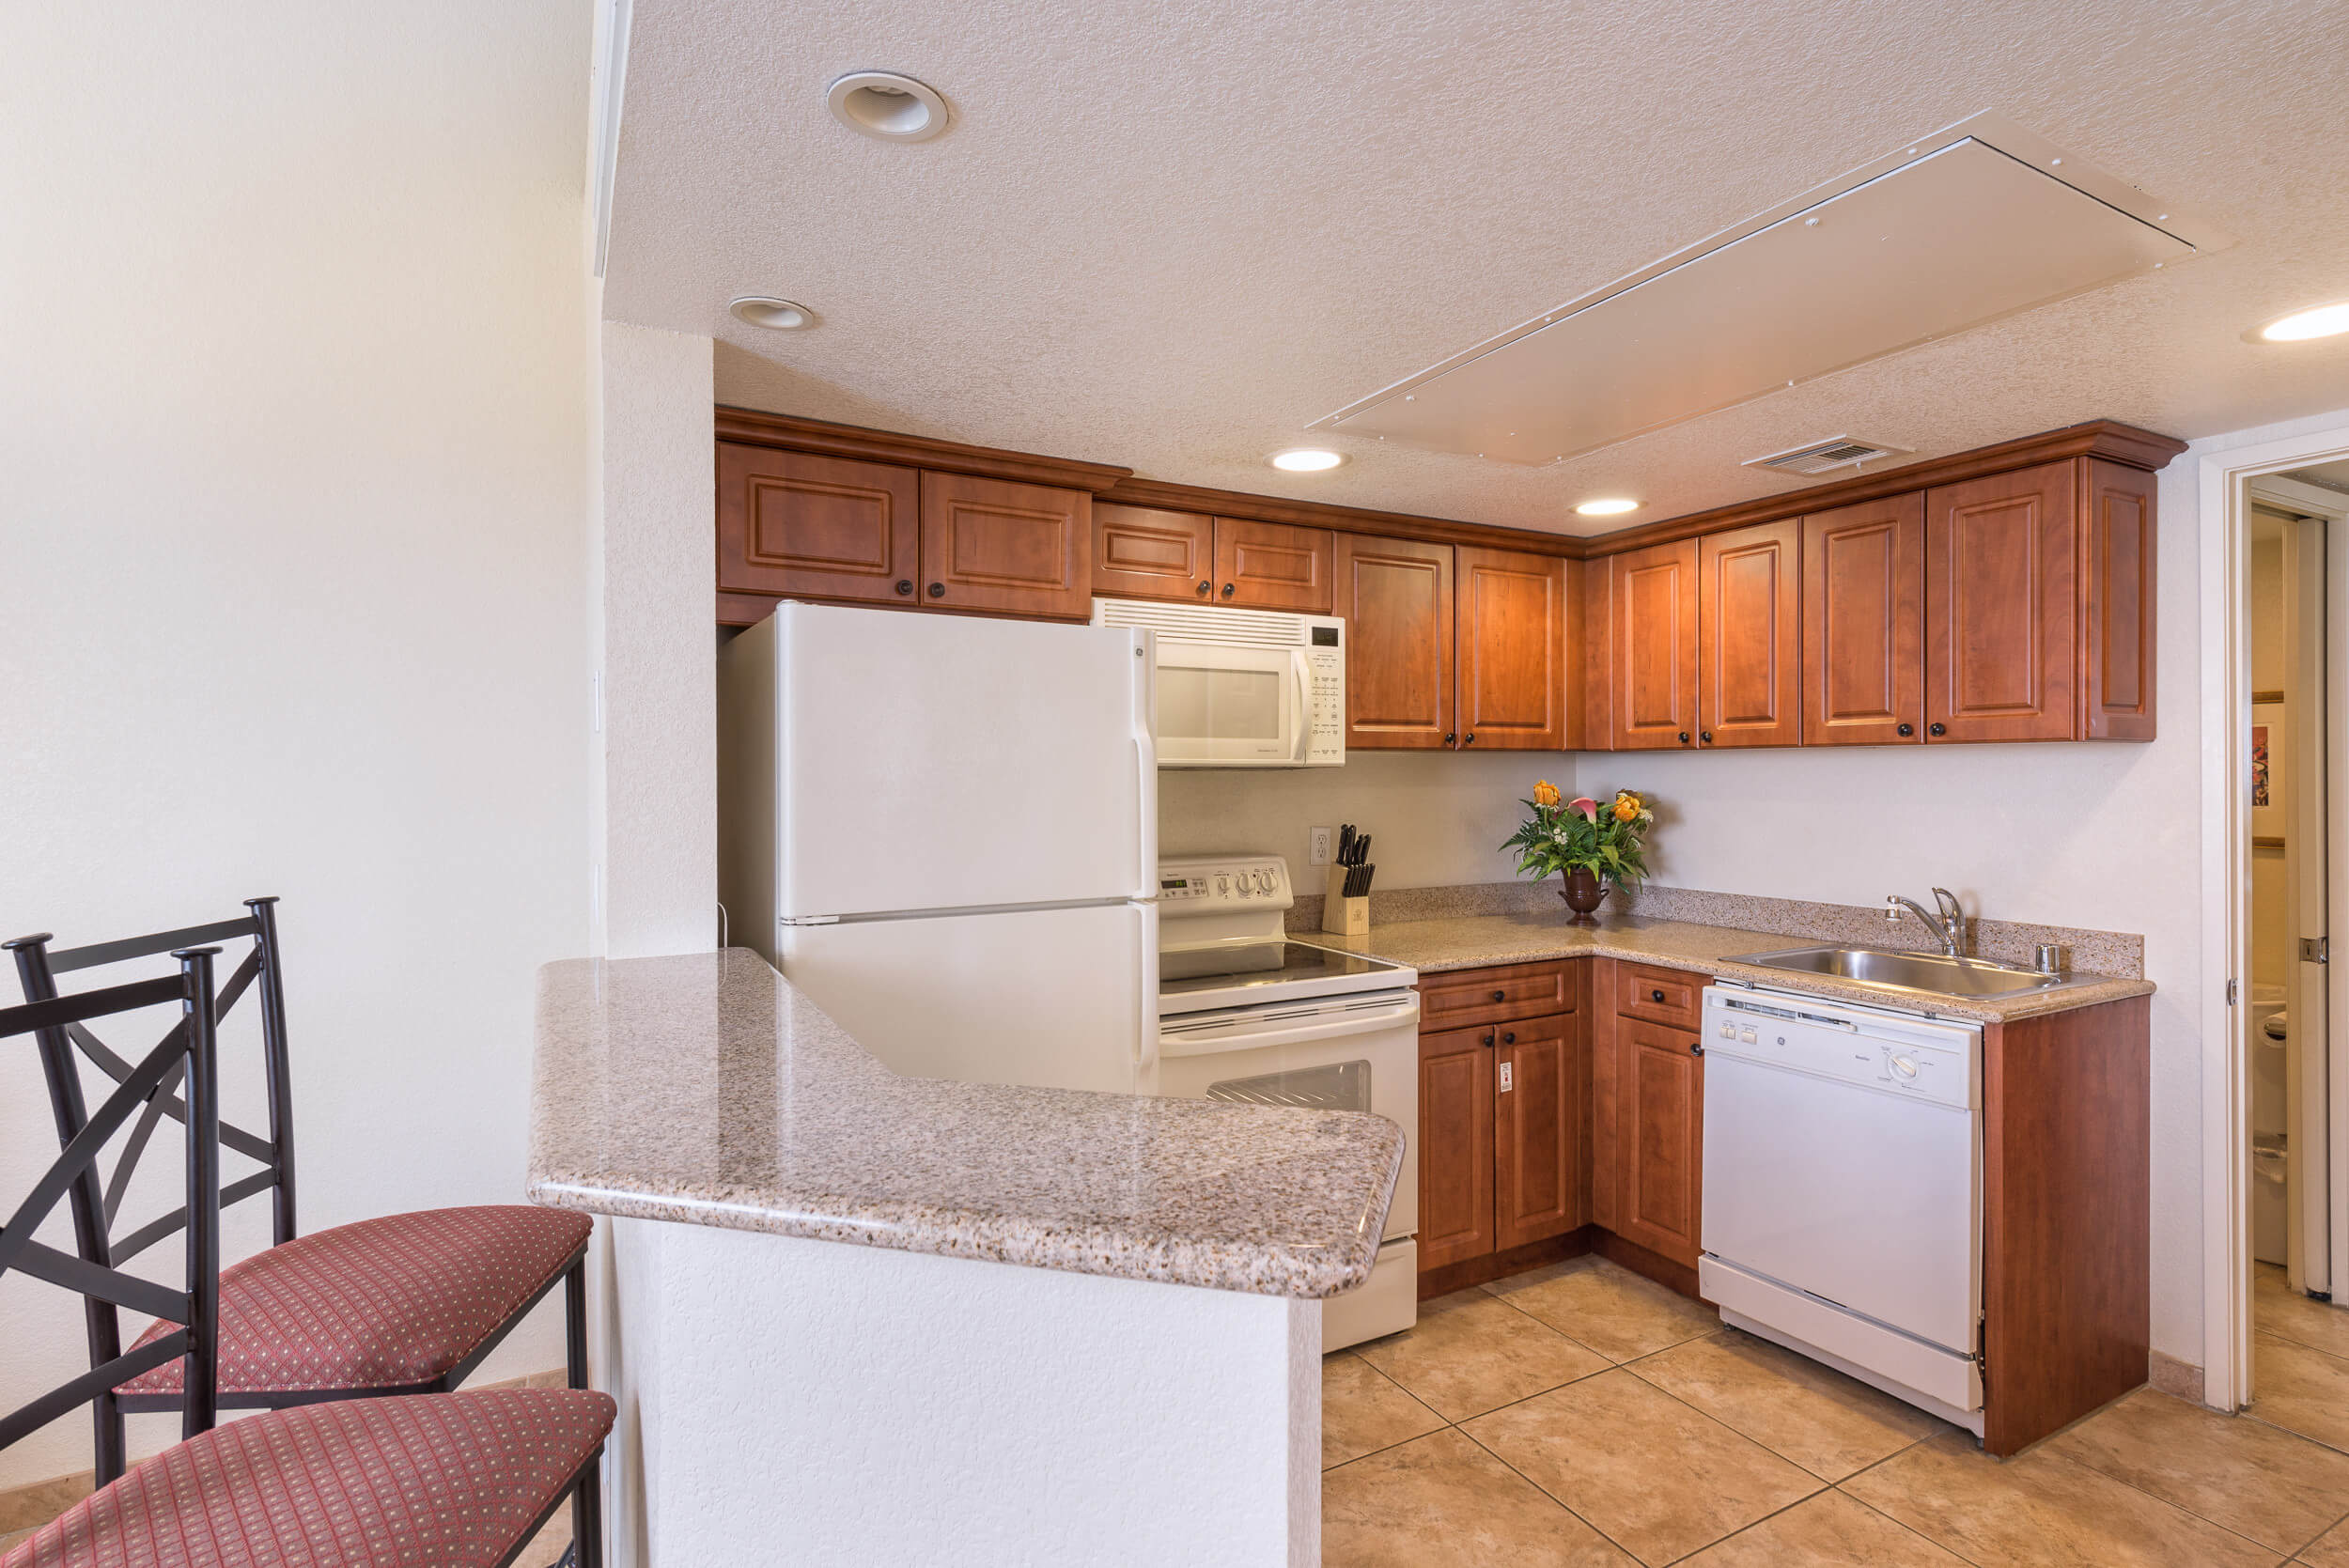 Kitchen in 2 Bedroom Villa at our Flamingo Las Vegas hotel | Westgate Flamingo Bay Resort | Westgate Resorts in Las Vegas NV